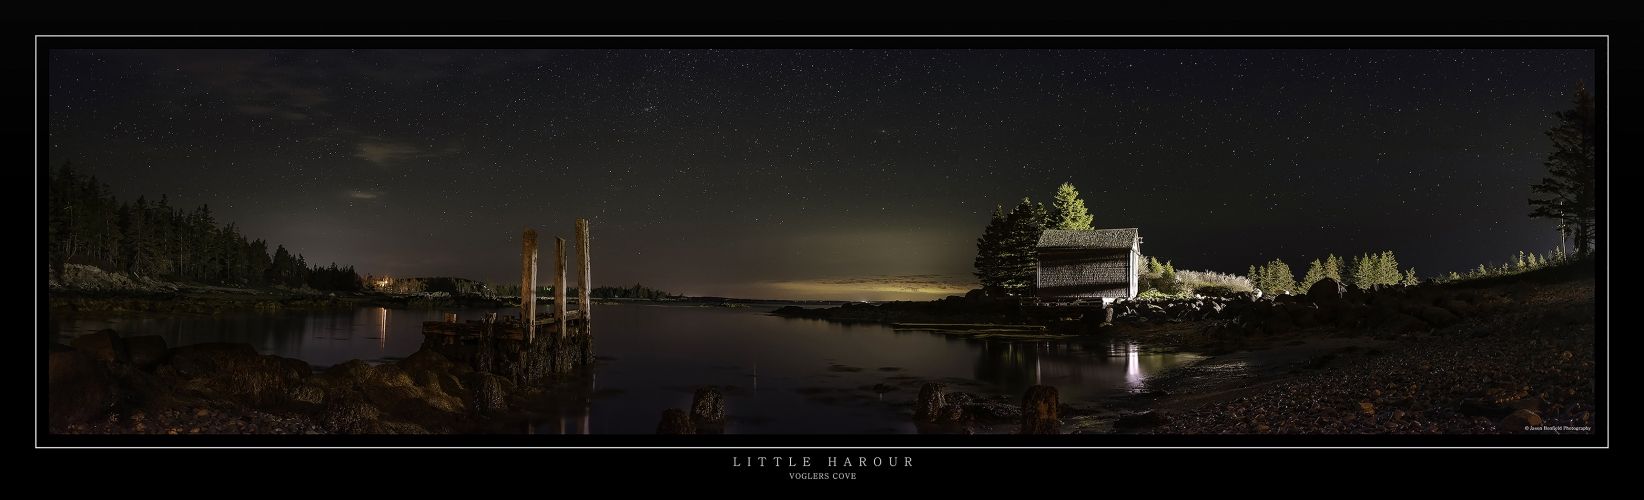 Night time panoramic landscape picture of Little Harbour near Voglers Cover, Nova Scotia South shore, Canada showing an old disused pier with 3 vertical posts and an old fishing hut set against the night sky.